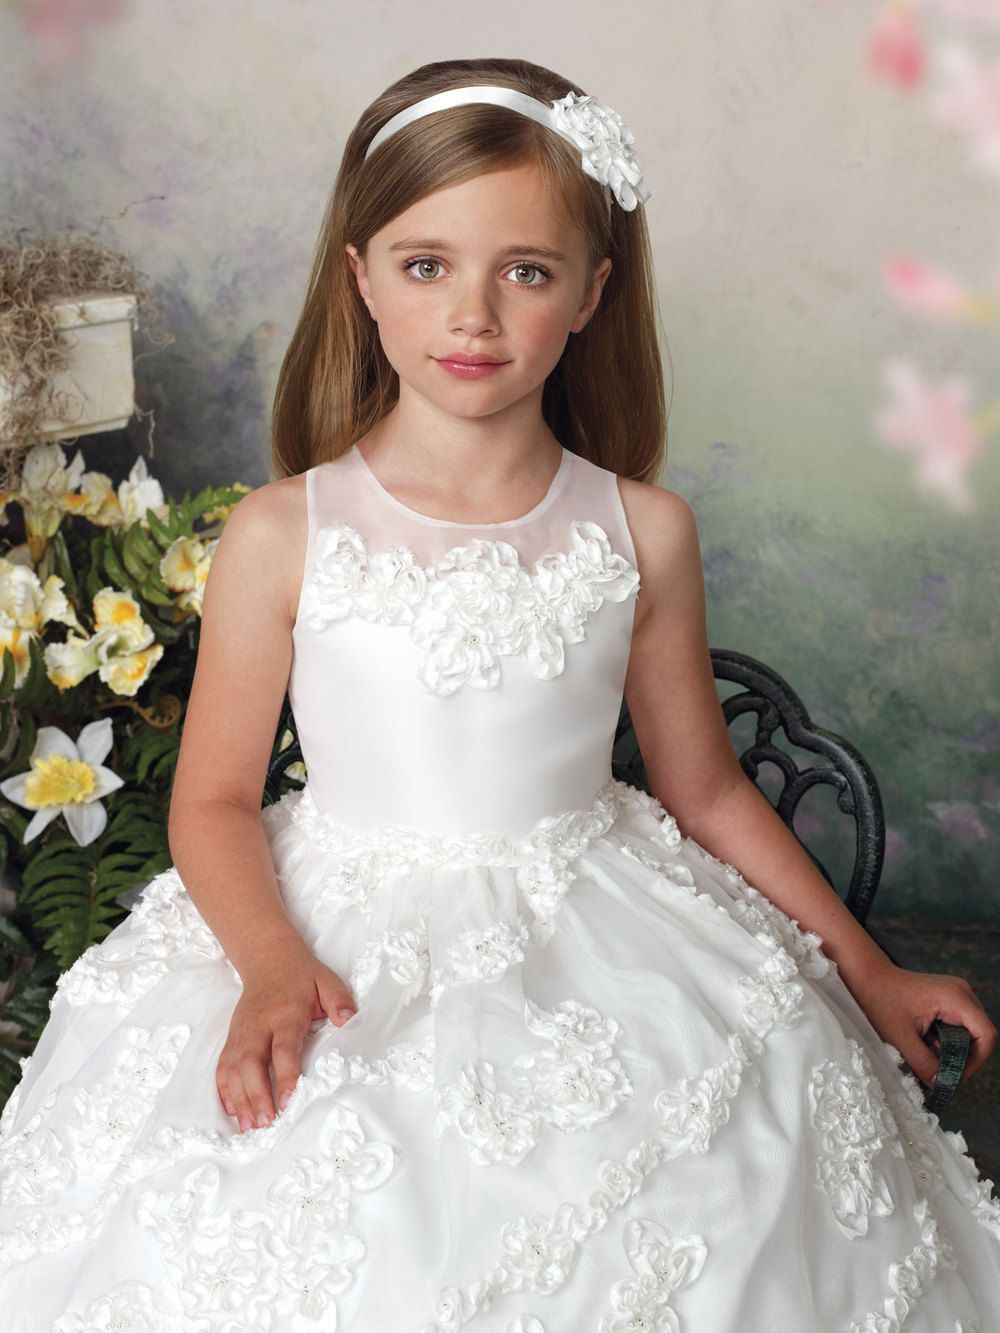 61 33 Ball Gown Jewel Sleeveless Ankle Length White Special Occasion Girls Dress Joan Calabre First Communion Dresses Holy Communion Dresses Communion Dresses [ 1333 x 1000 Pixel ]